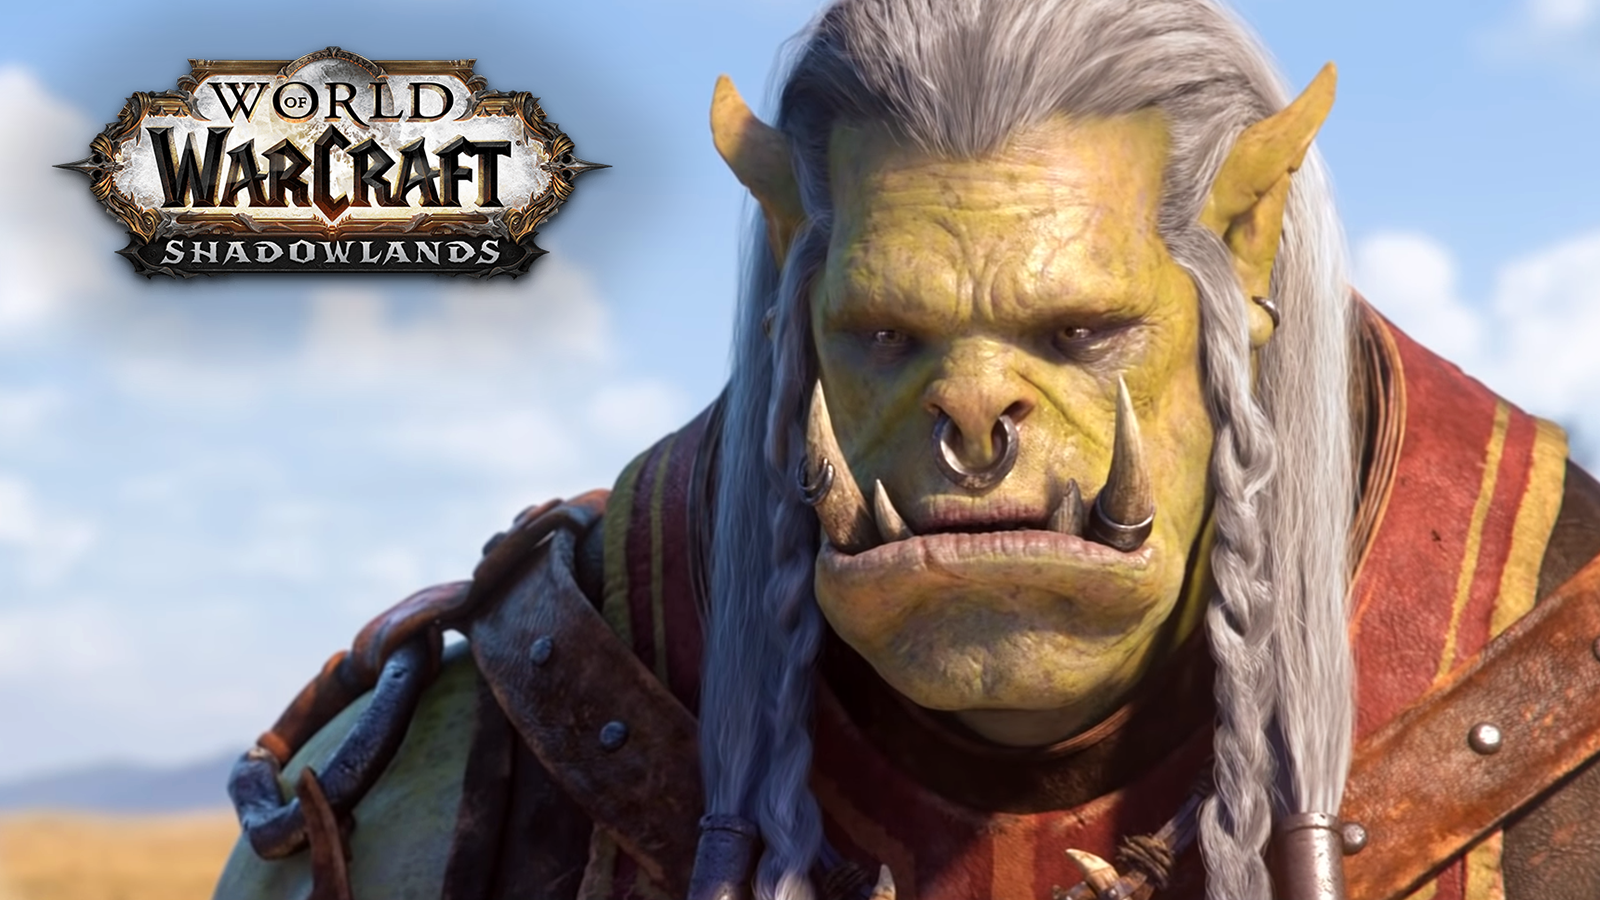 Varok Saurfang standing in a field in World of Warcraft.